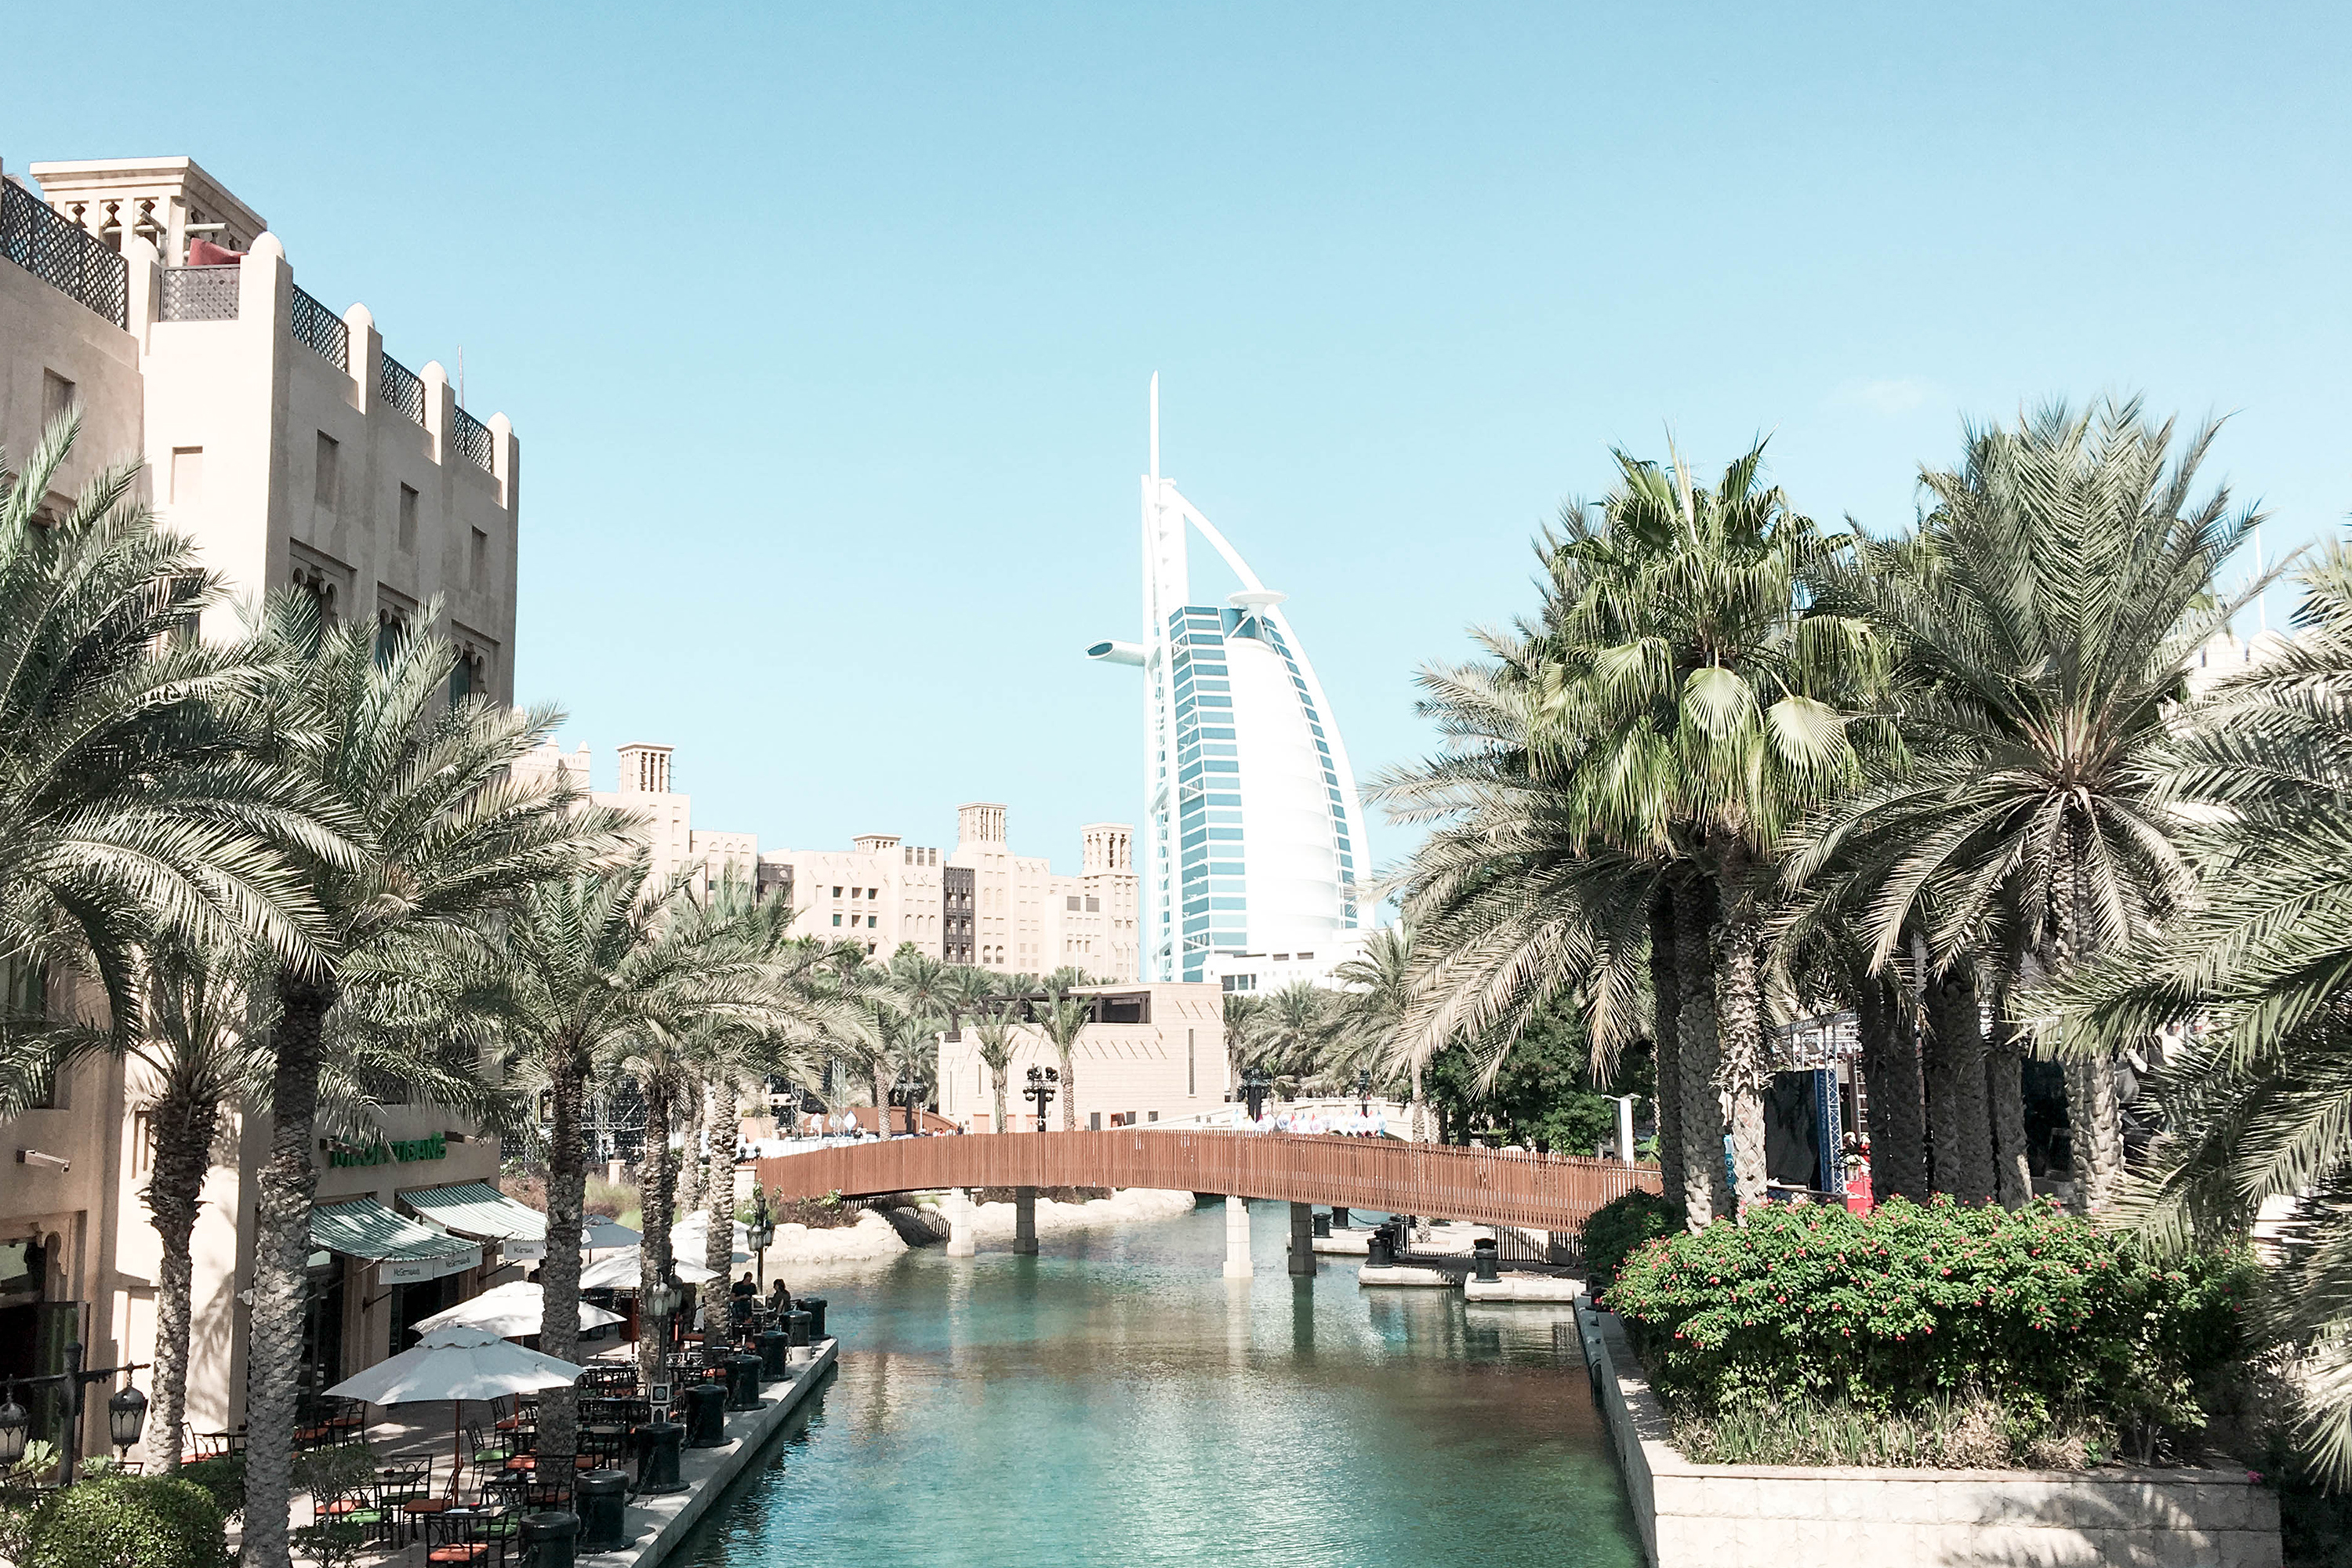 1 day in Dubai – Jumeirah Medinat